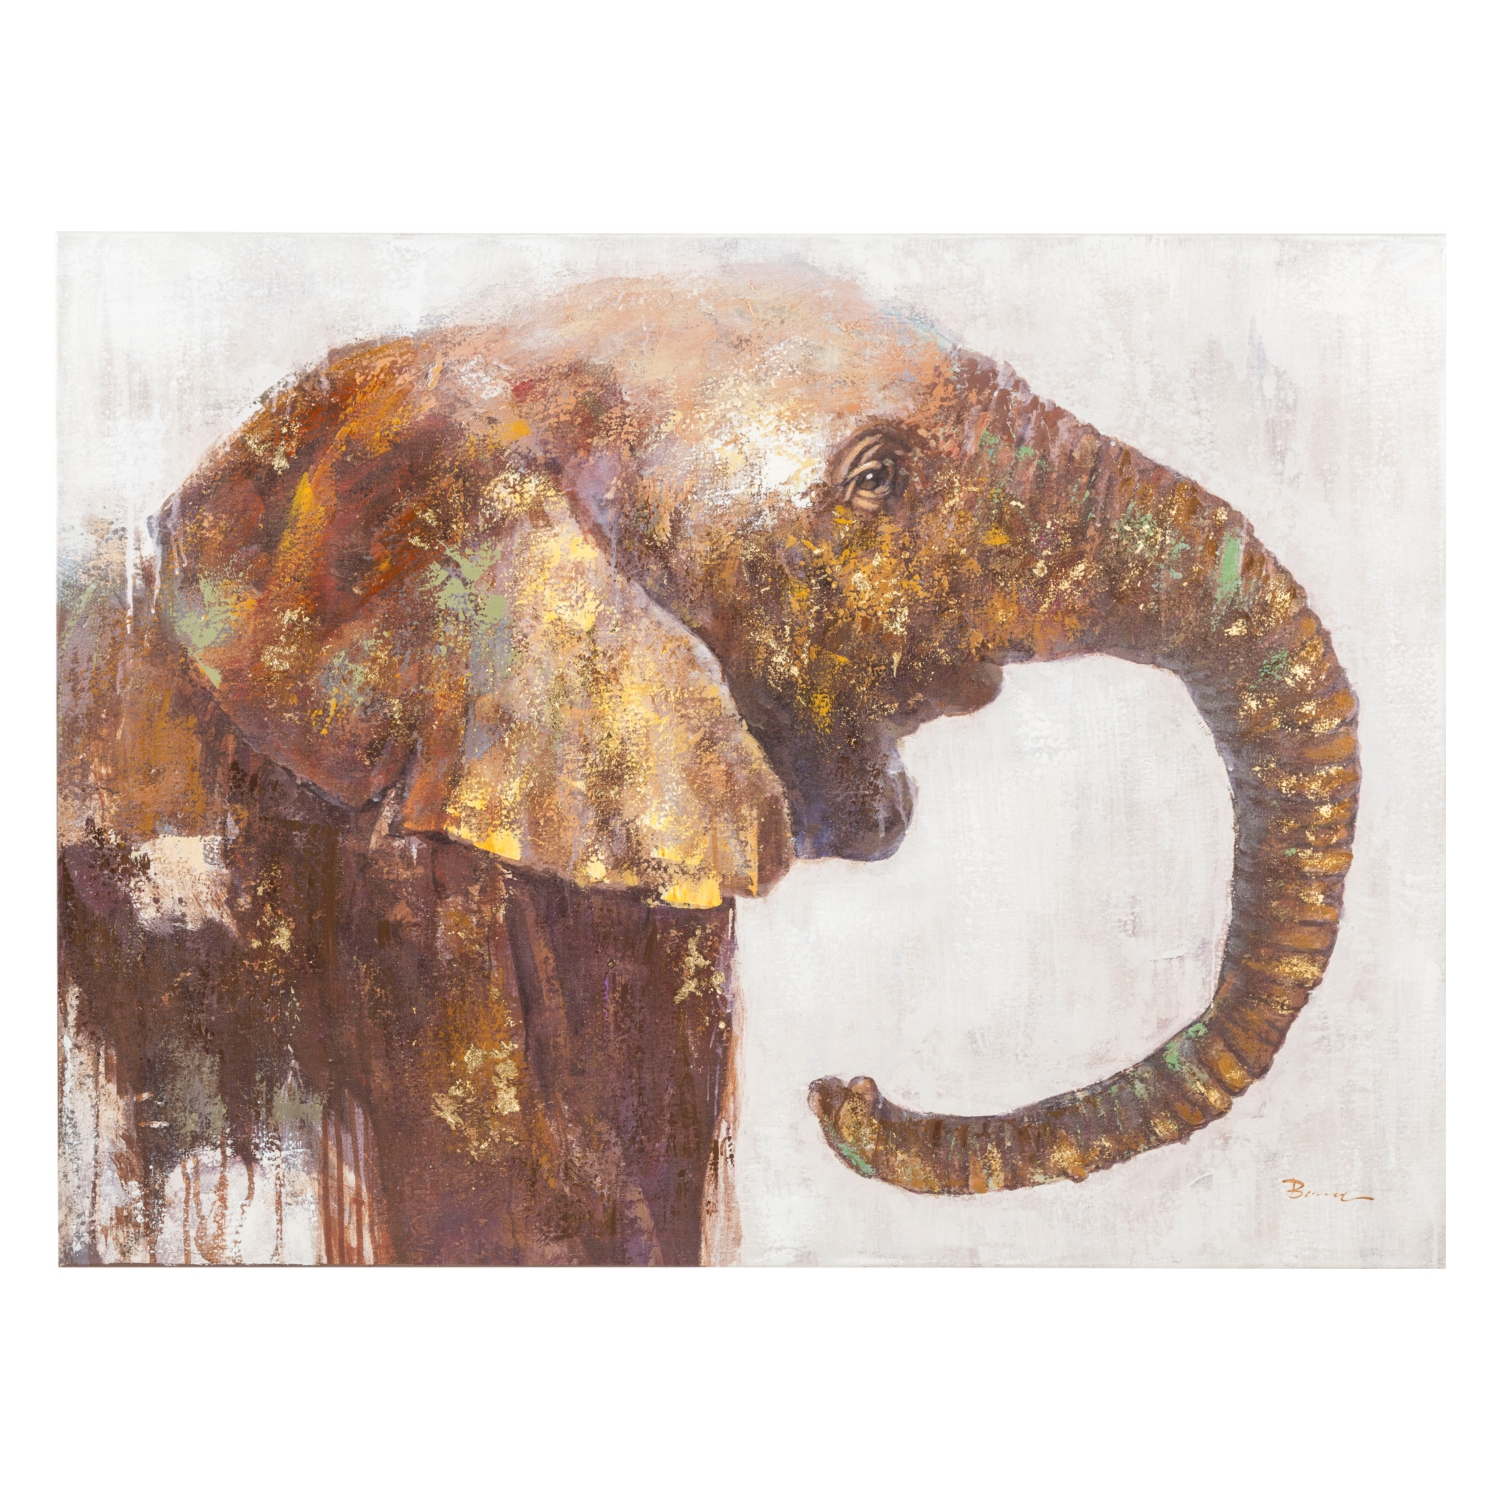 GRACEFUL ELEPHANT YAĞLI BOYA TABLO 90X120 CM